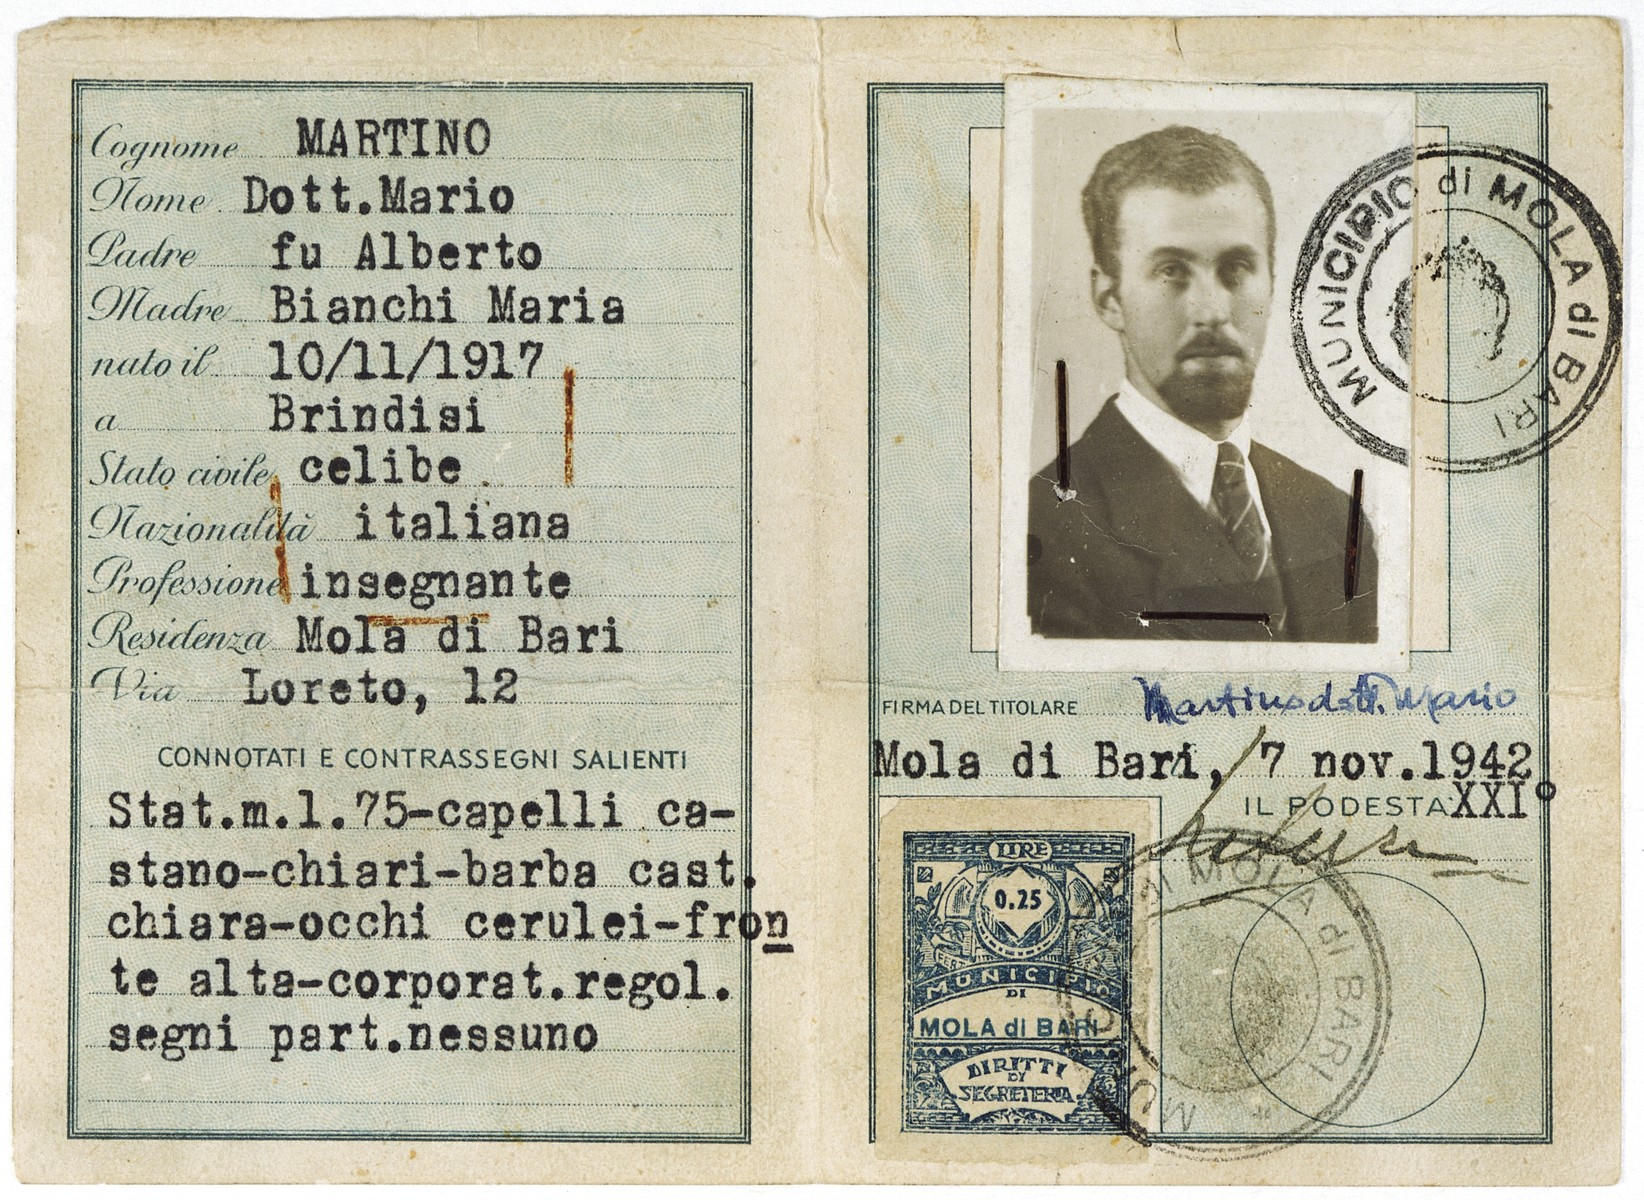 False identification card issued to the Italian Jew, Marcello Morpugo, who was living under the alias of Mario Martino during the German occupation of Italy.  Morpugo grew a beard to help disguise his identity.